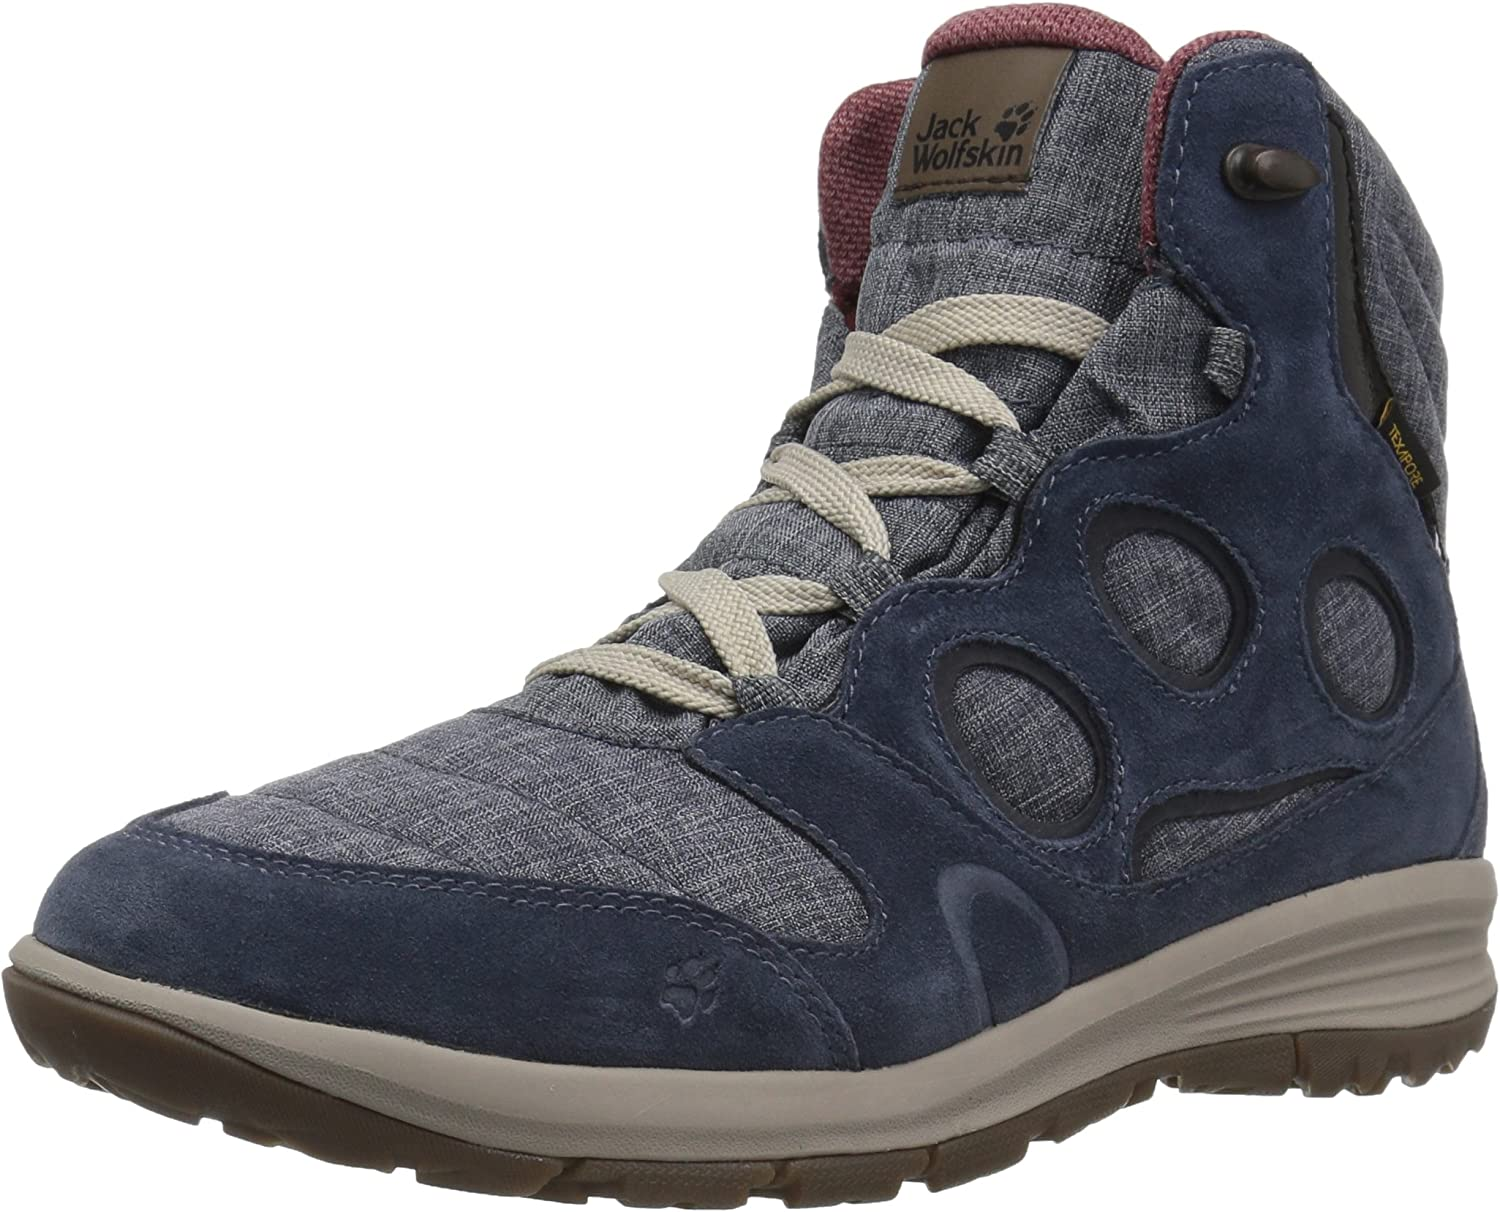 Jack Wolfskin Womens Vancouver Texapore MID W Fashion Boot